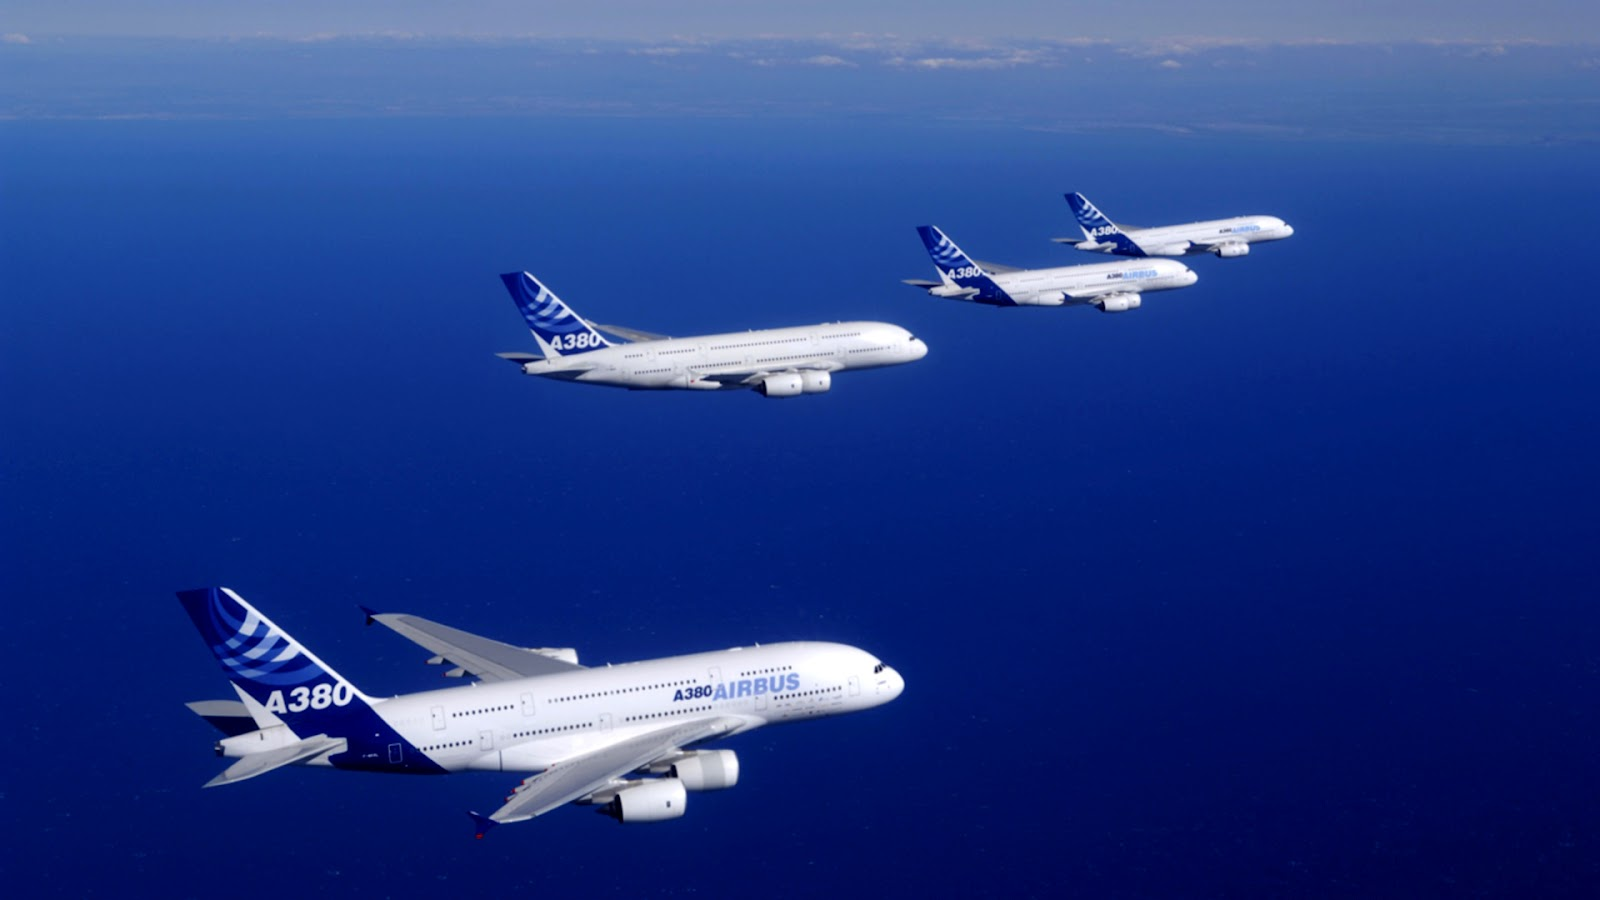 Airbus A380 Planes HD Wallpapers| HD Wallpapers ,Backgrounds ,Photos ...